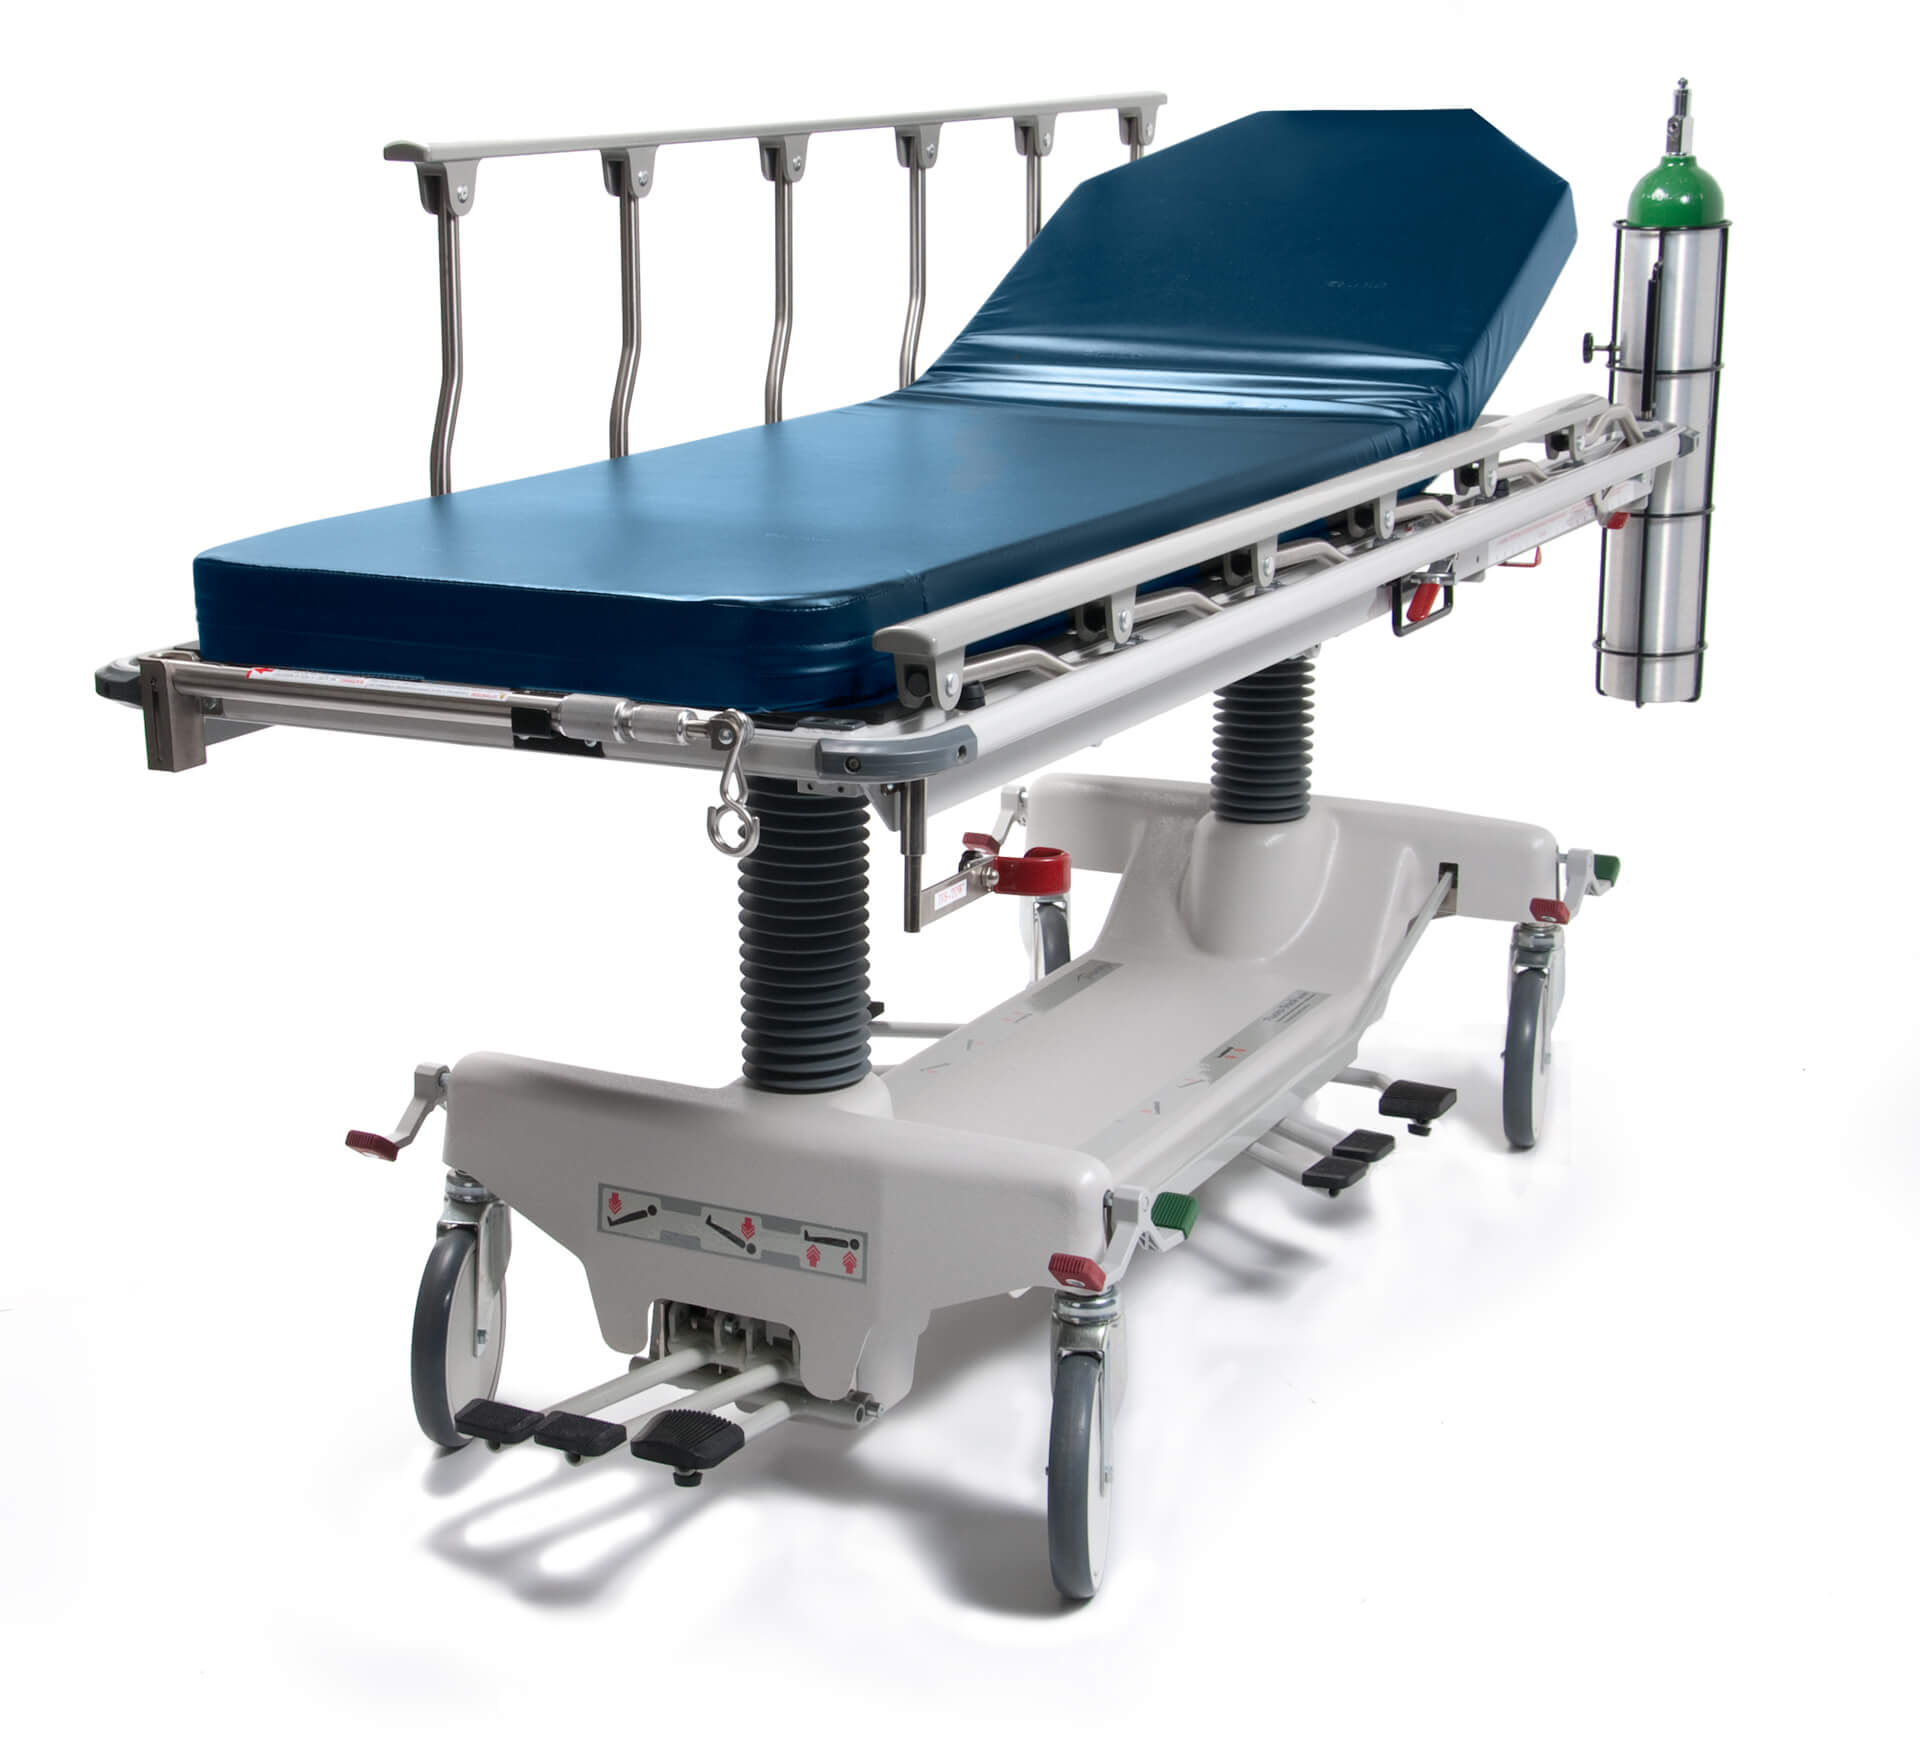 Fluroscopy Stretcher